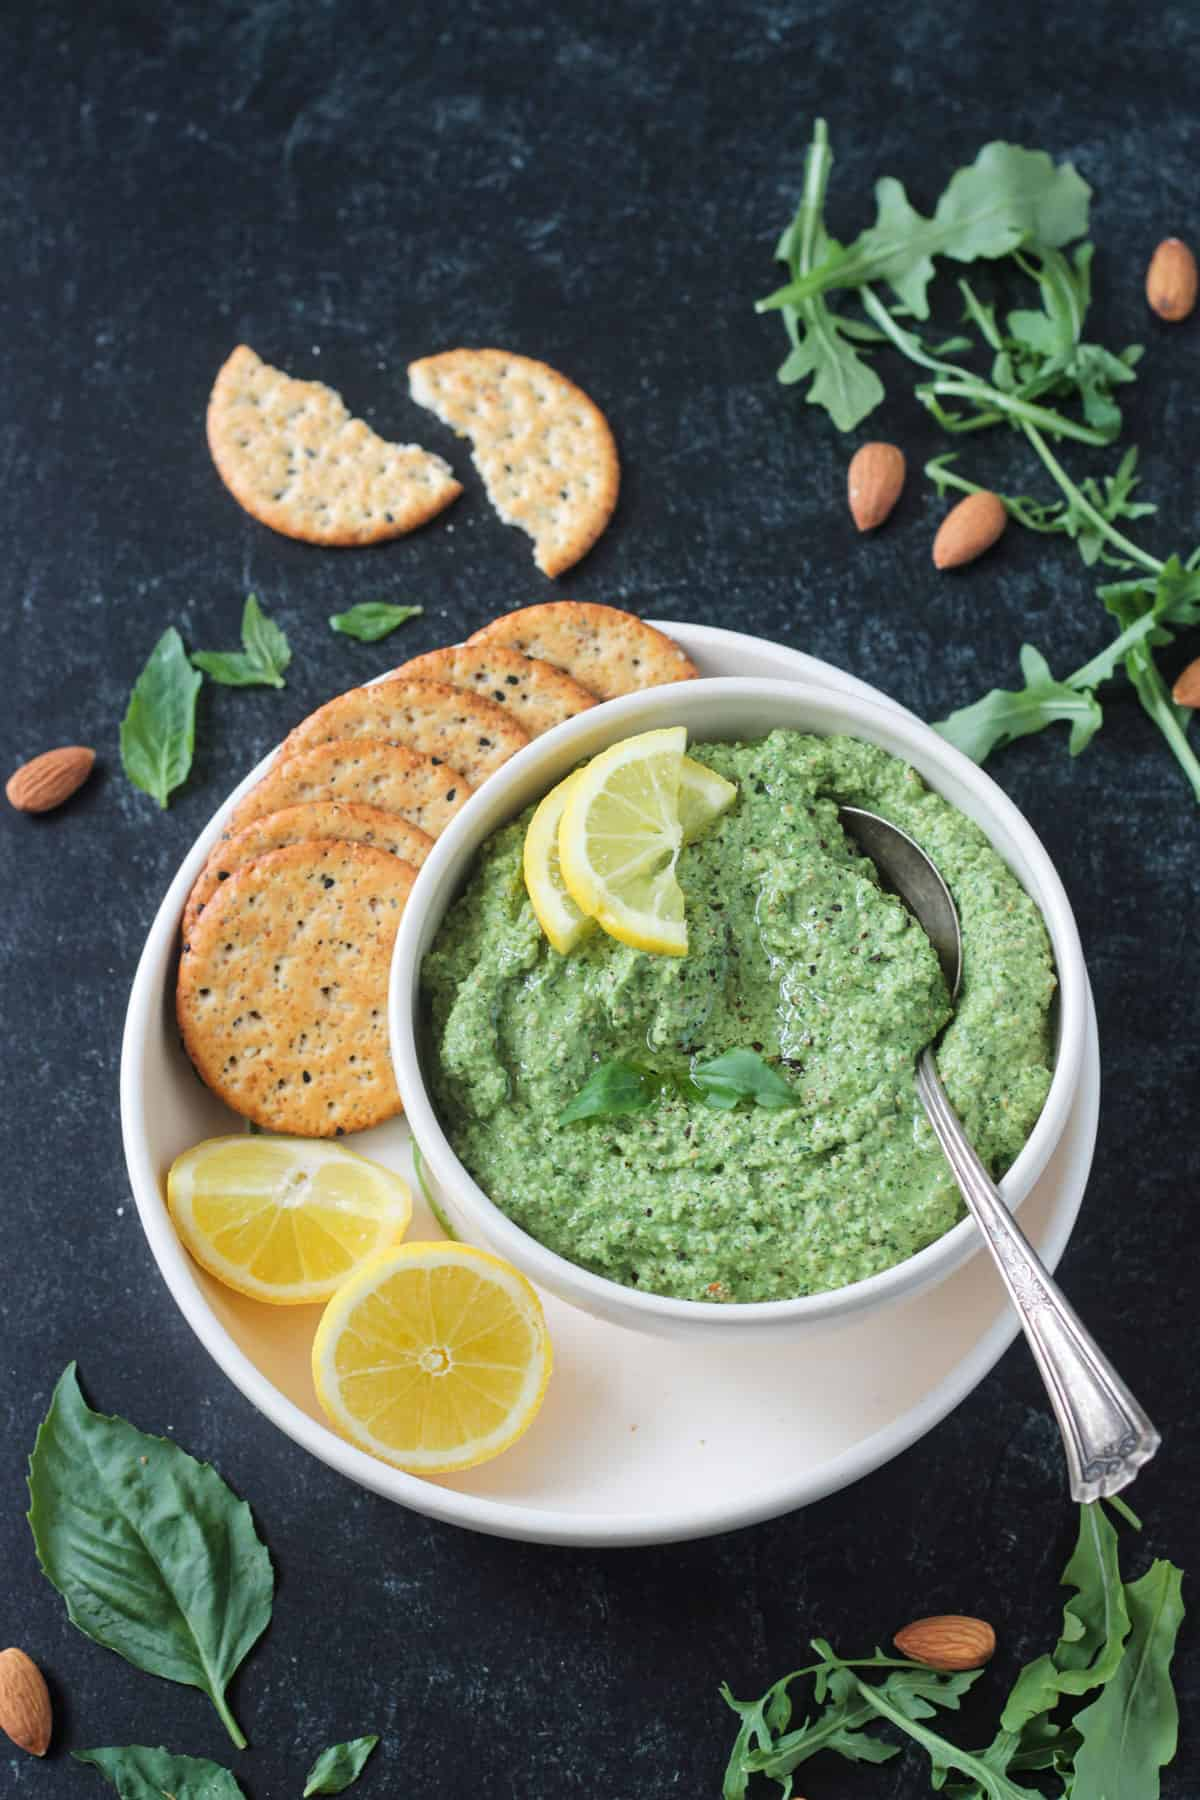 Spoon in a bowl of pesto next to crackers.